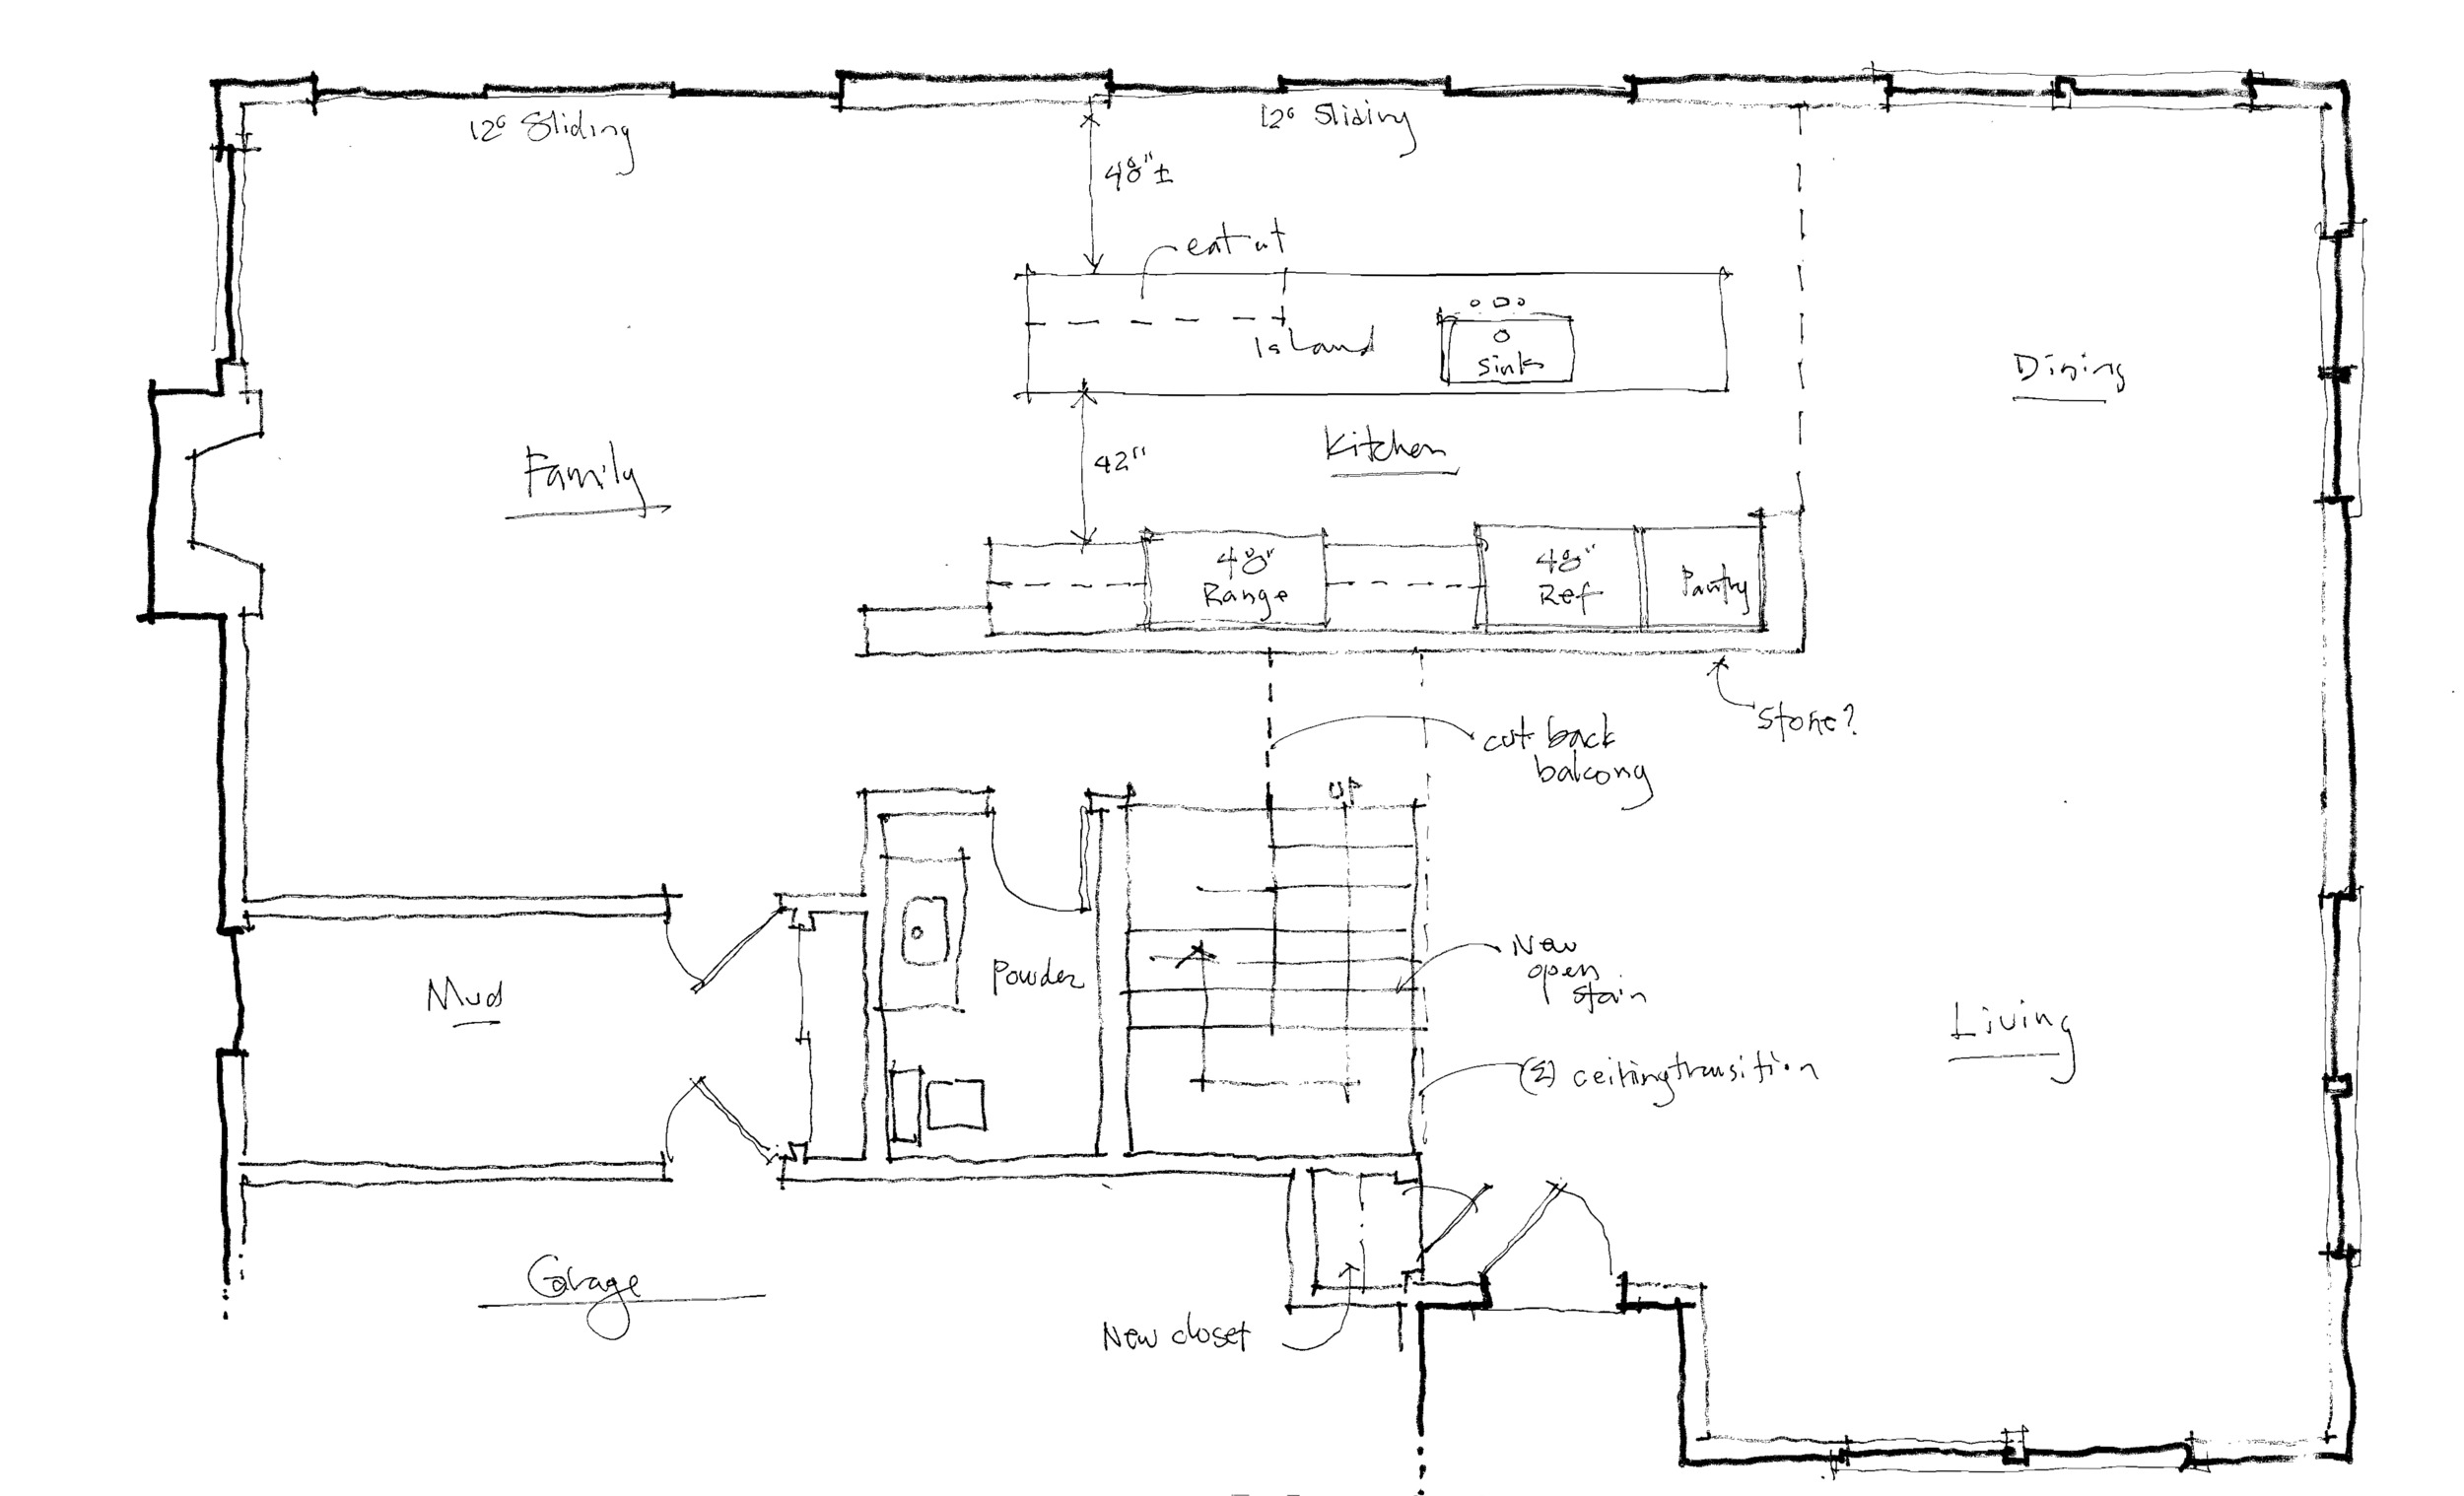 The most basic plan, leaving the existing stair.